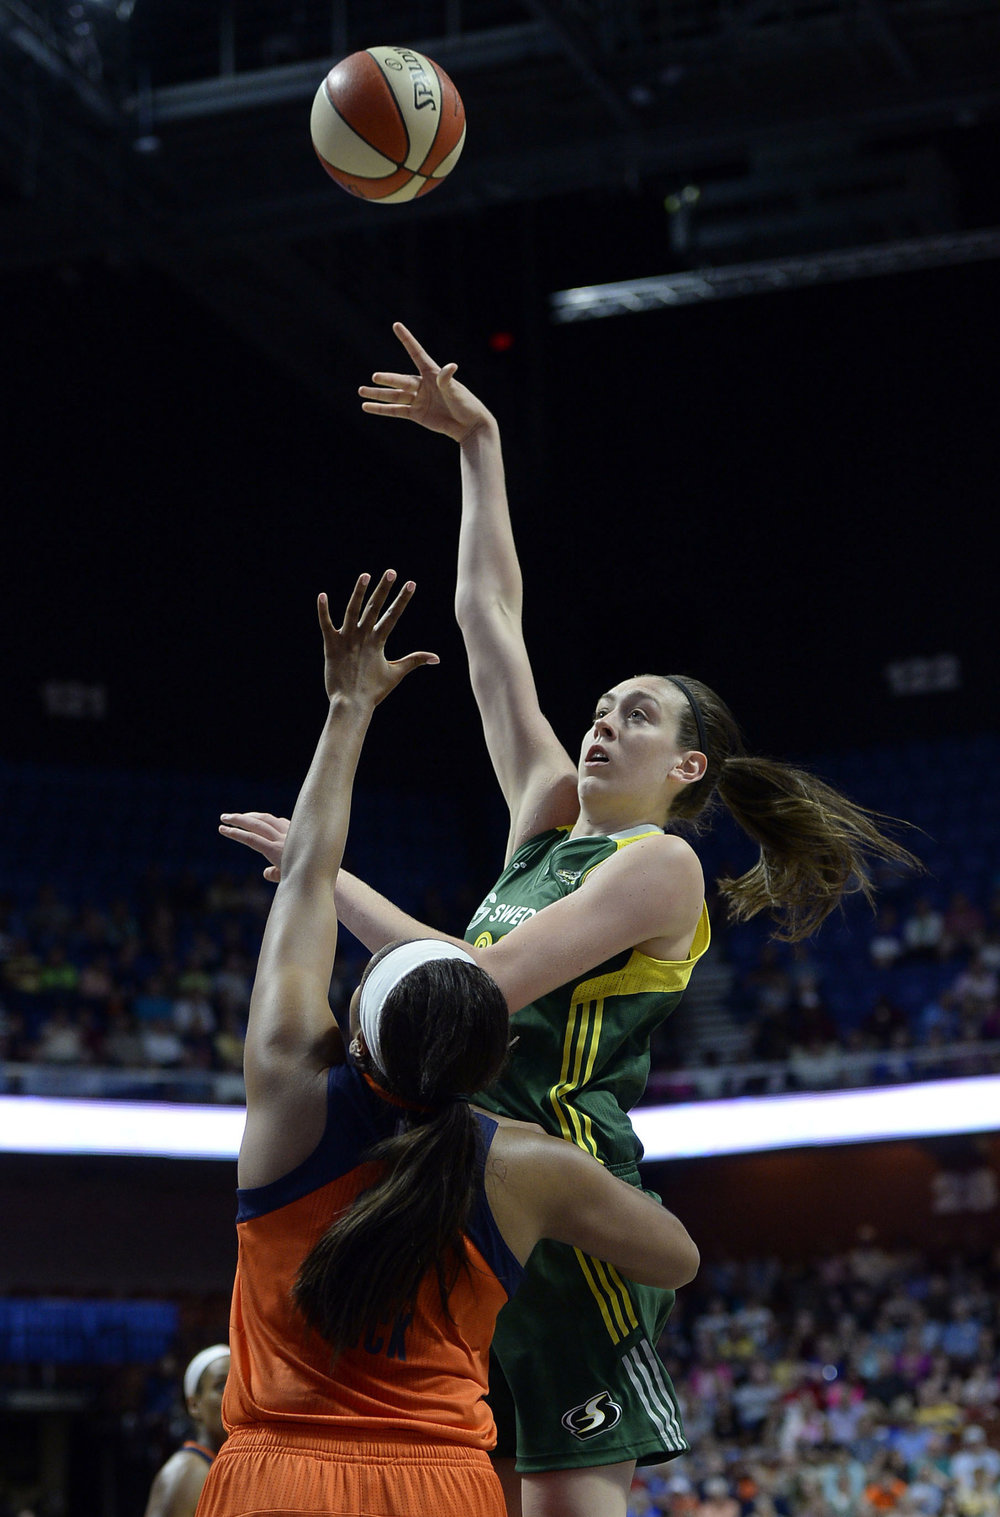 Seattle Storm's Breanna Stewart shoots over Connecticut Sun's Morgan Tuck during the second half of a WNBA basketball game in Uncasville, Conn. Both are UConn grads and Stewart is the newest WNBA rookie of the year. (Jessica Hill, File/AP)